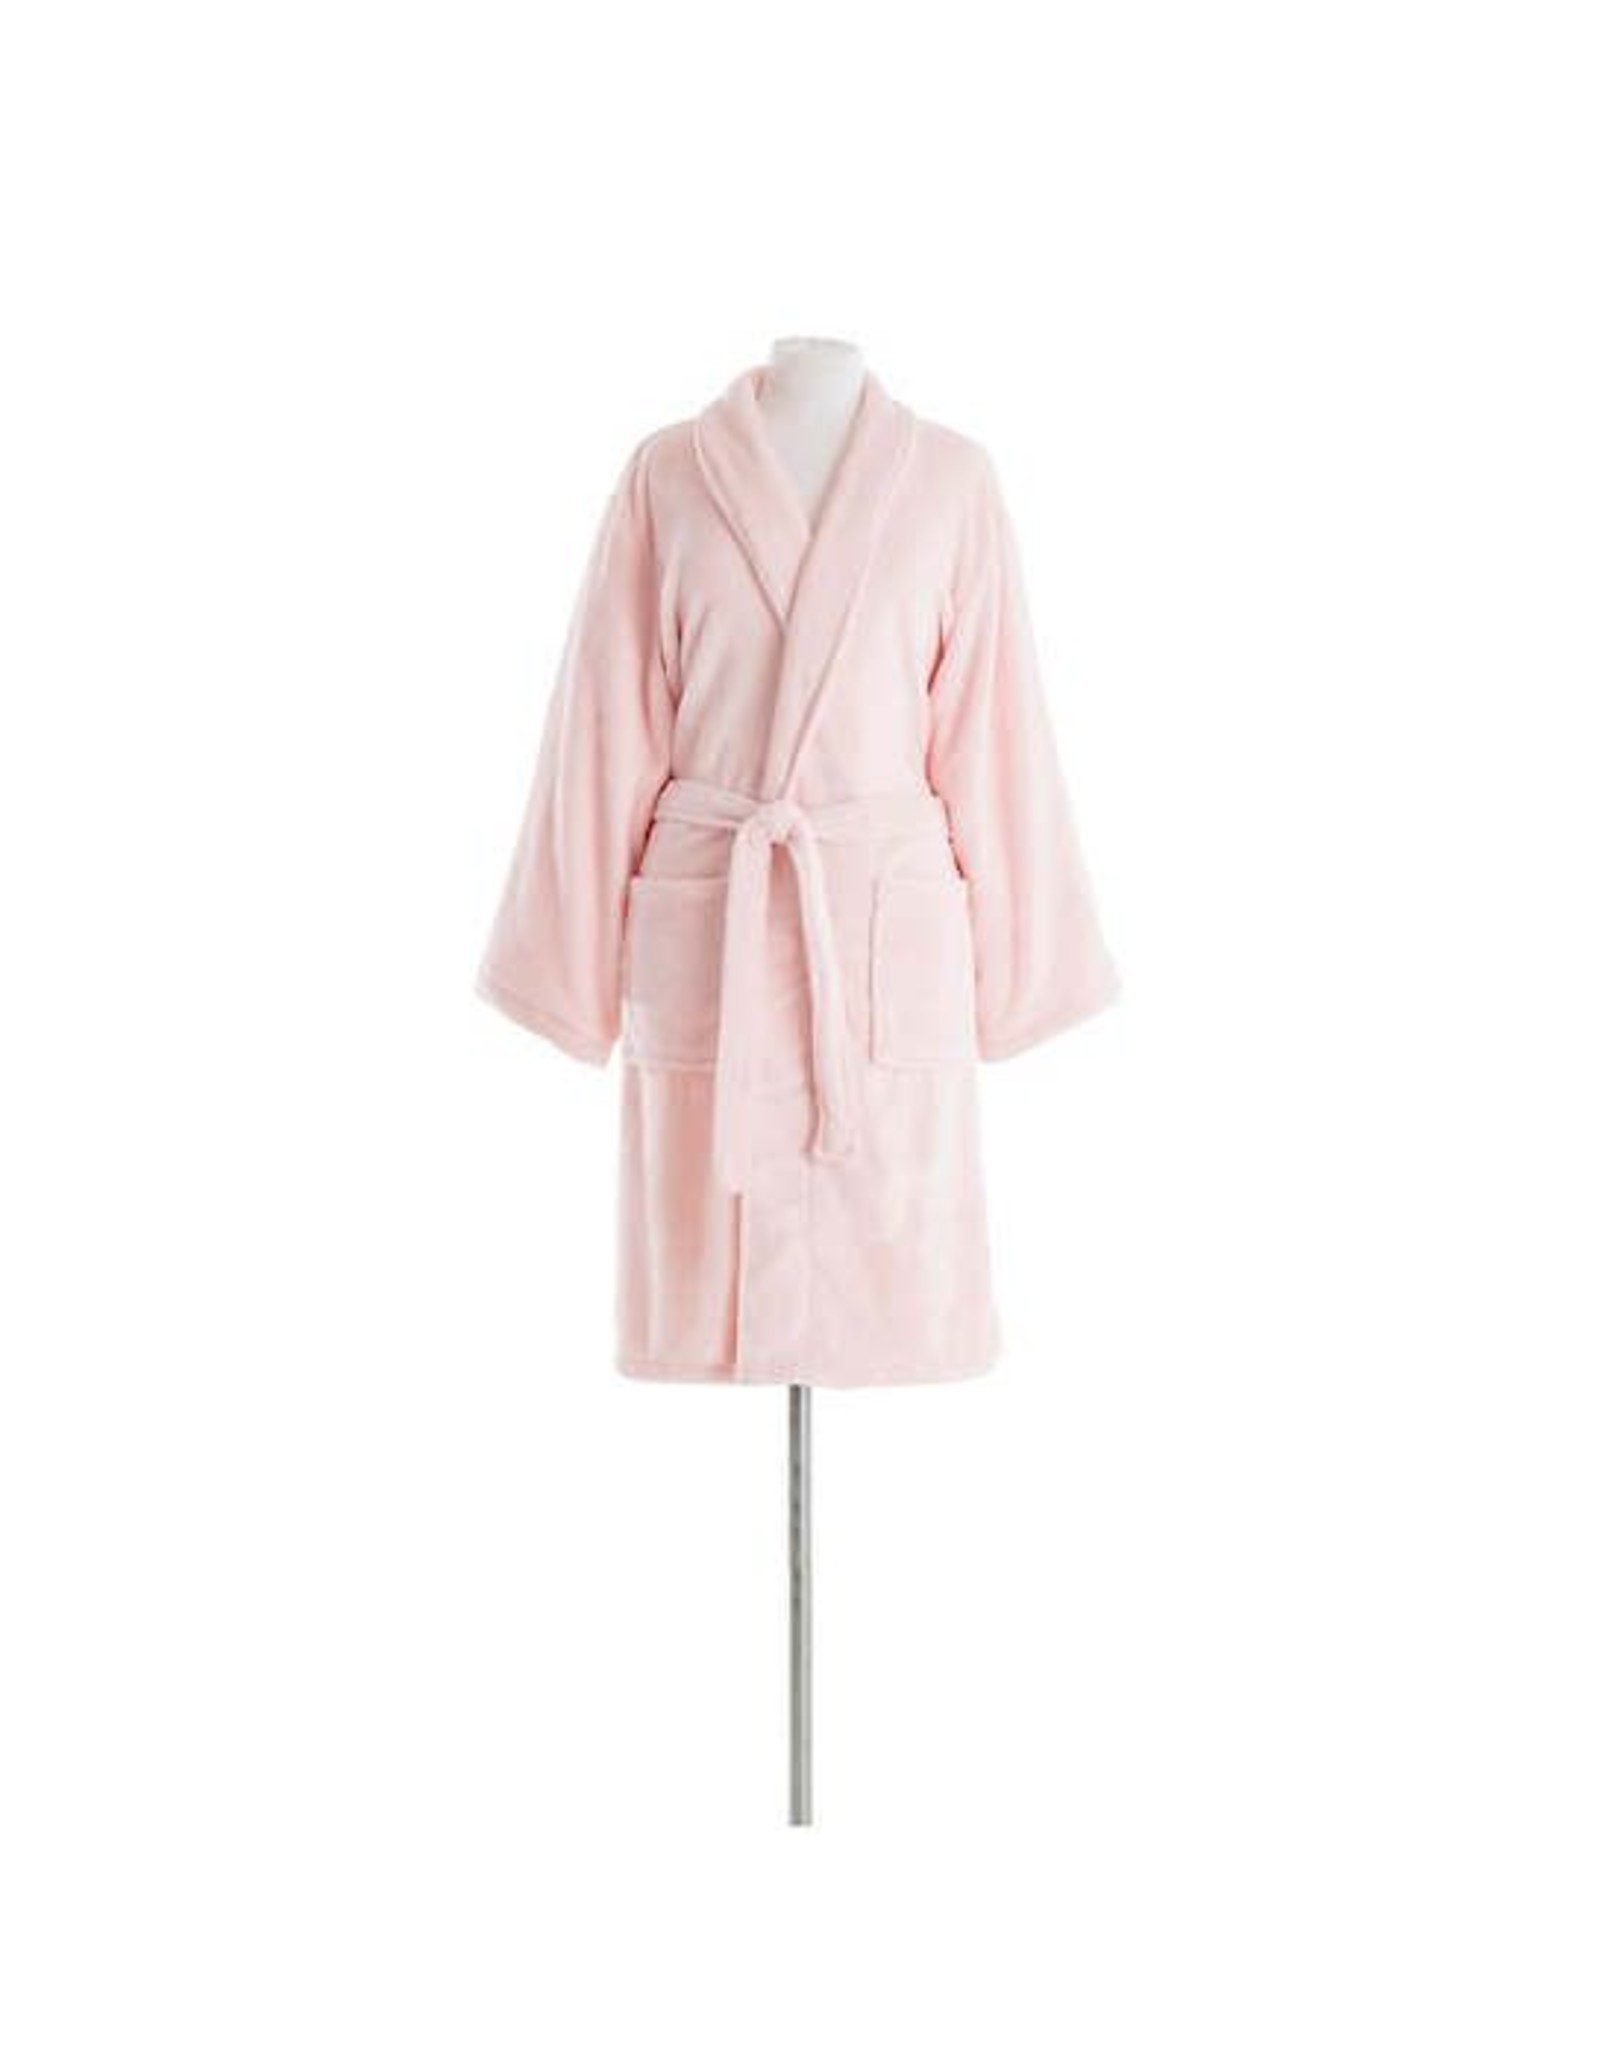 Pine Cone Hill Sheepy Fleece Pale Rose Shortie Robe